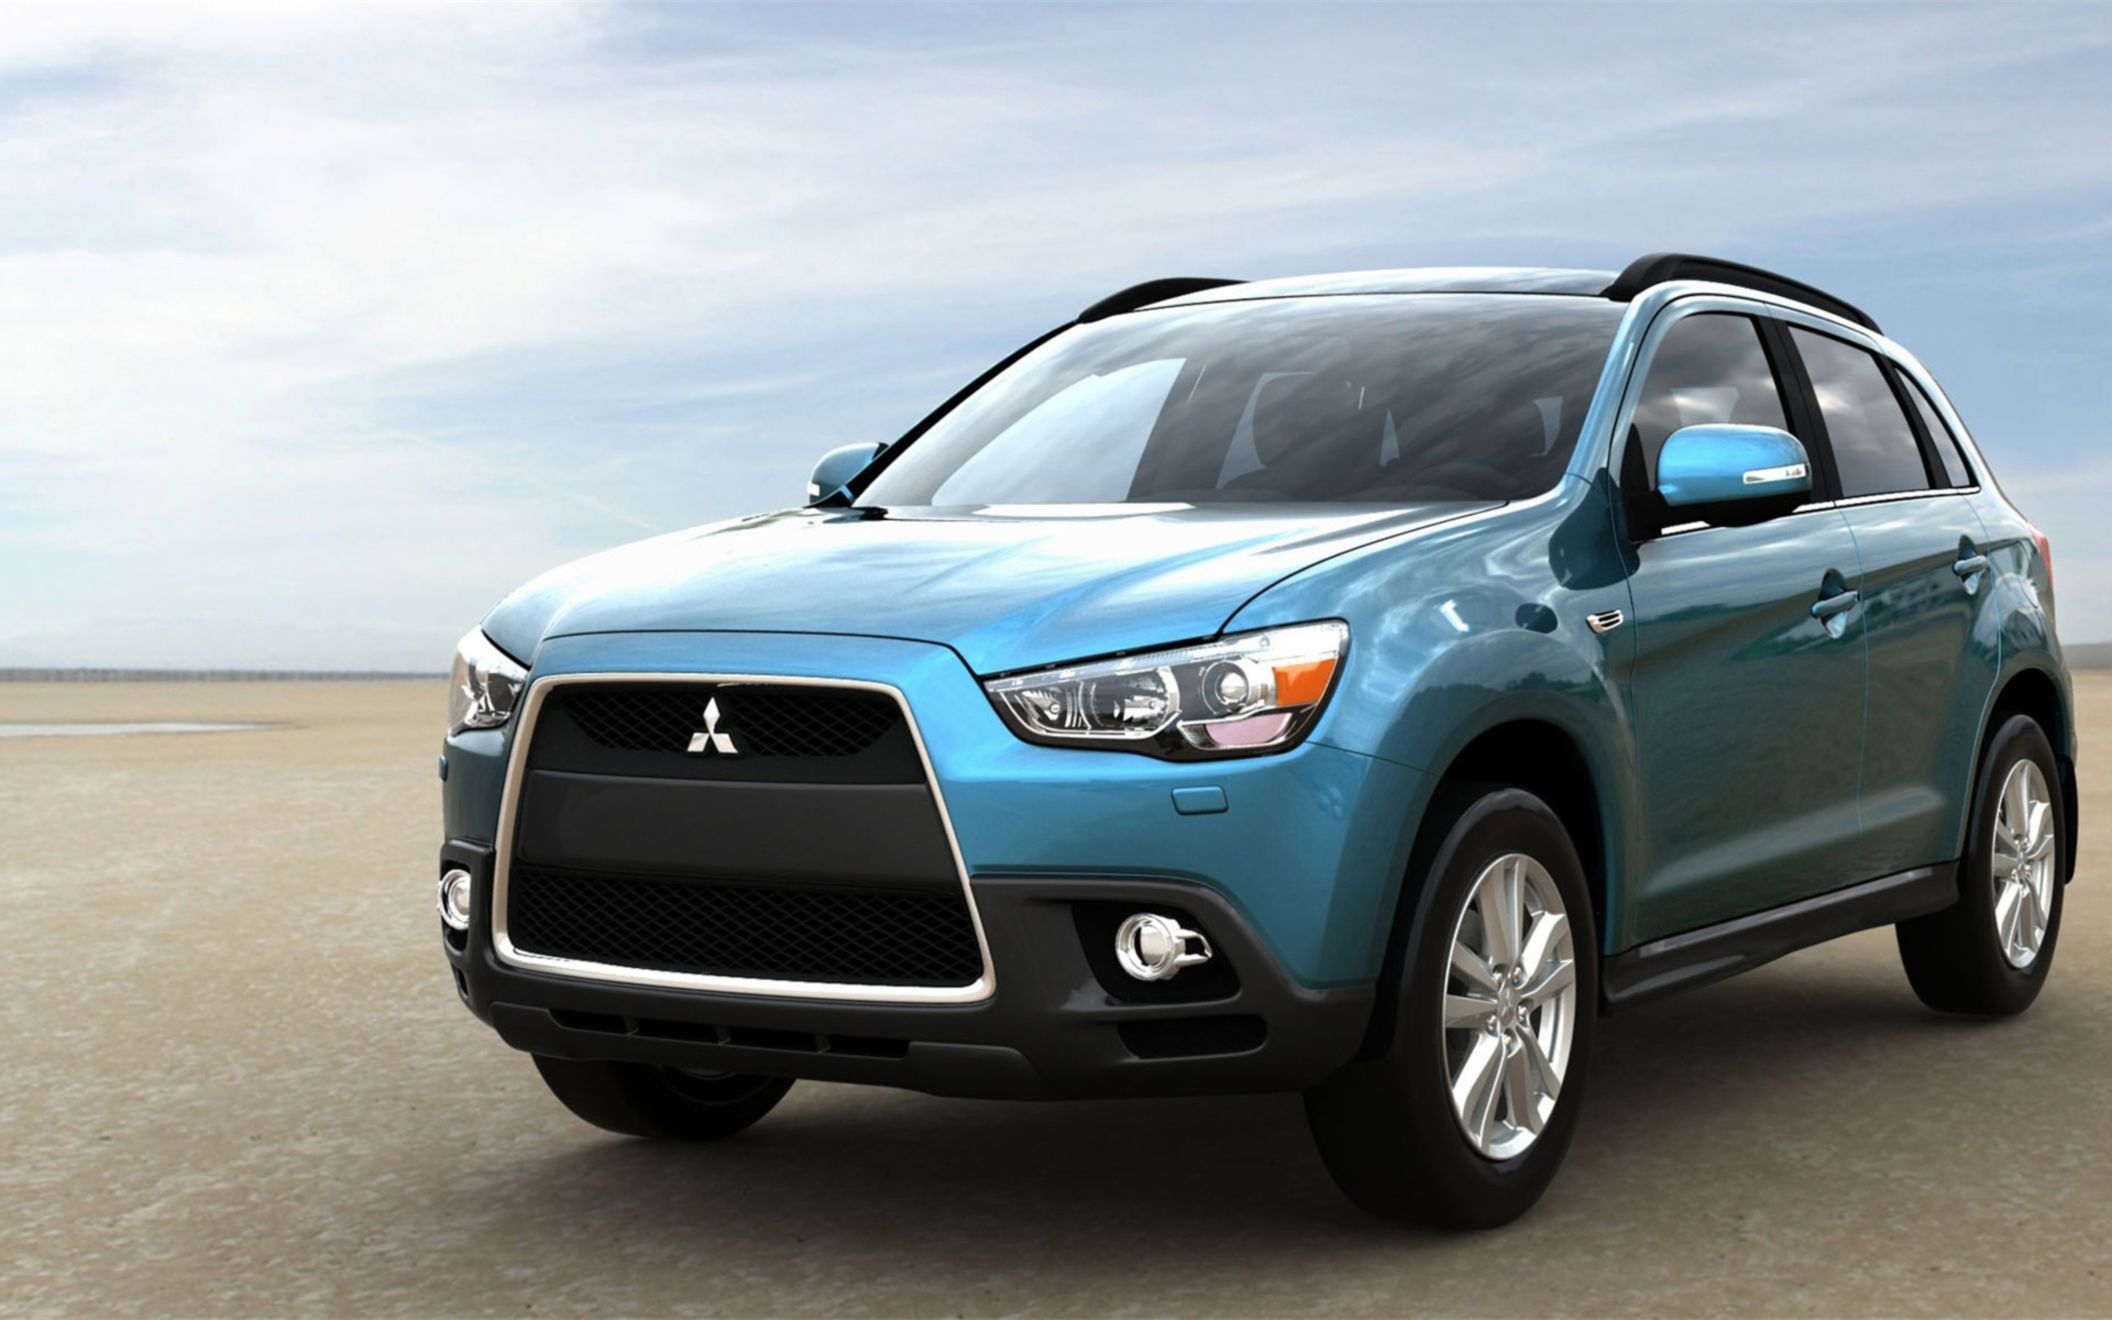 Download free HD 2011 Mitsubishi Asx Wide Wallpaper, image